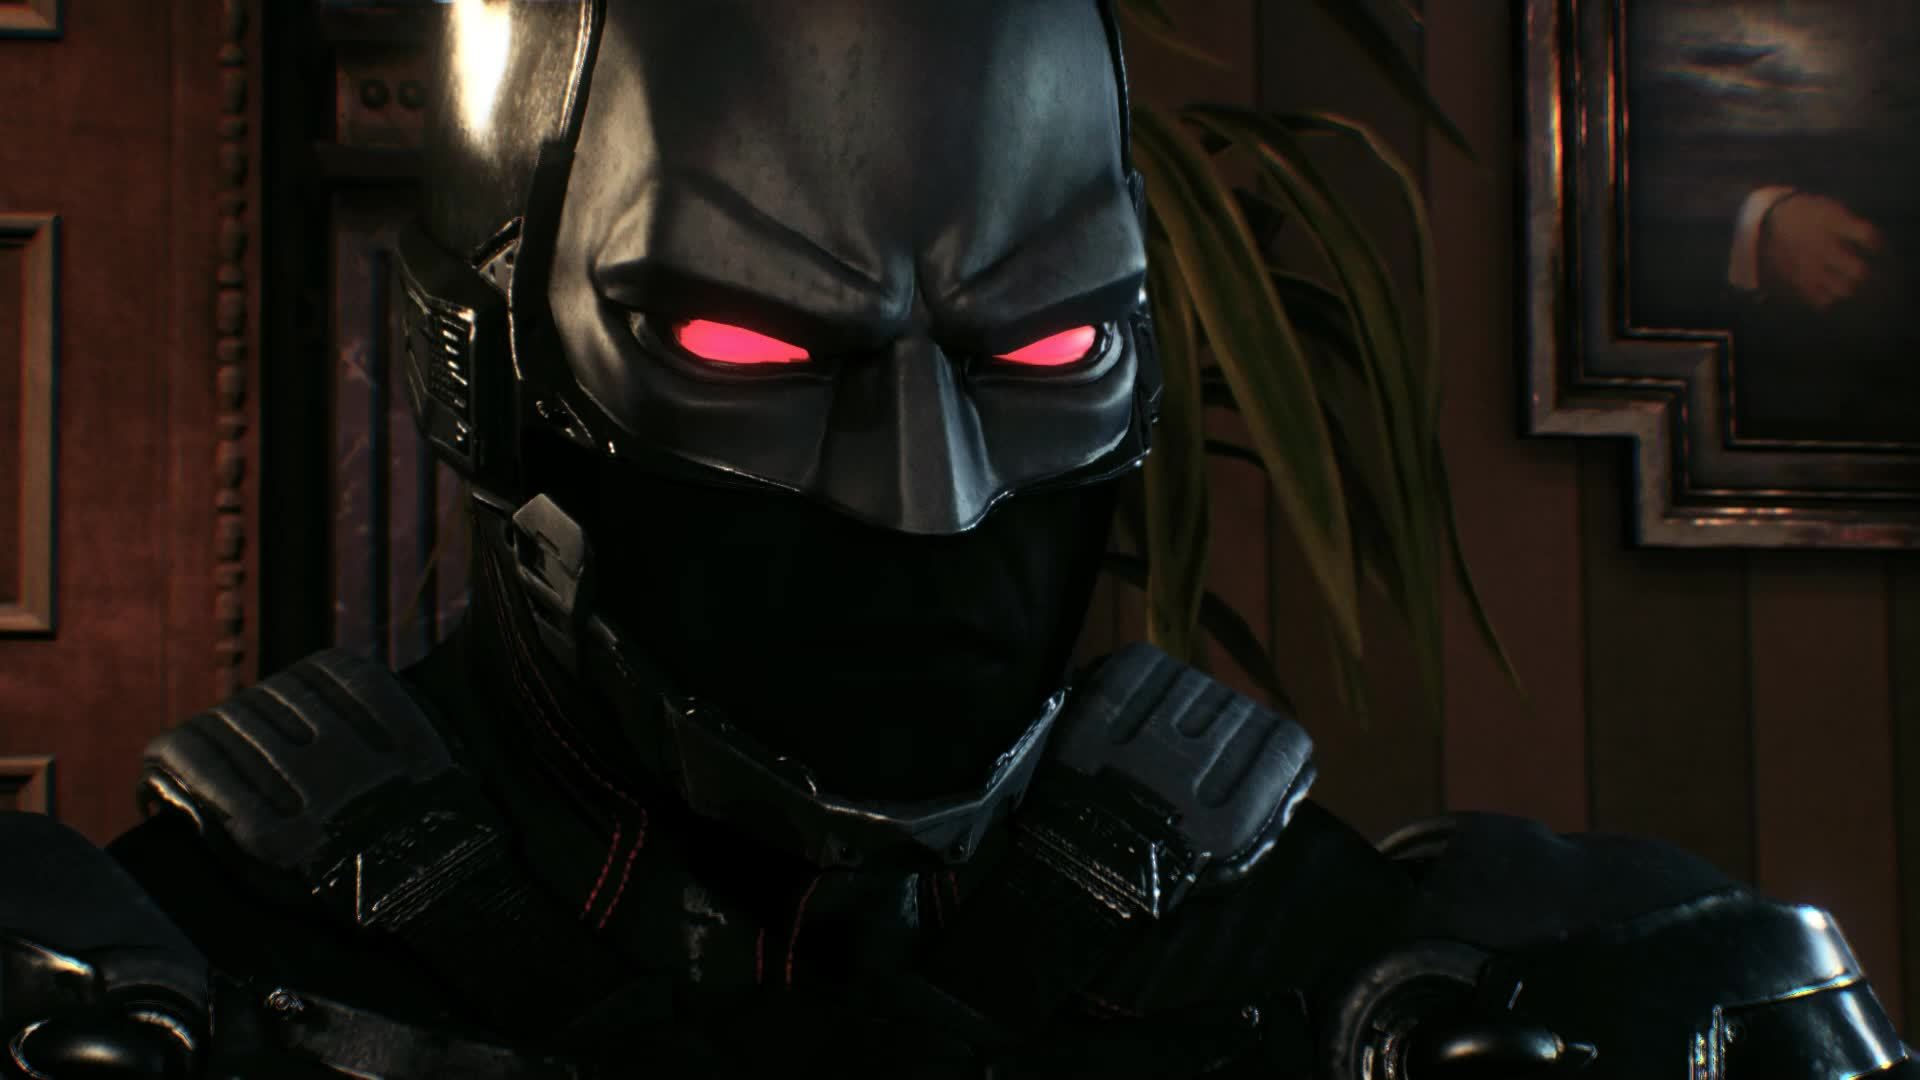 BatmanArkham, Glitch, Knight, Bruce's Eyes GIFs